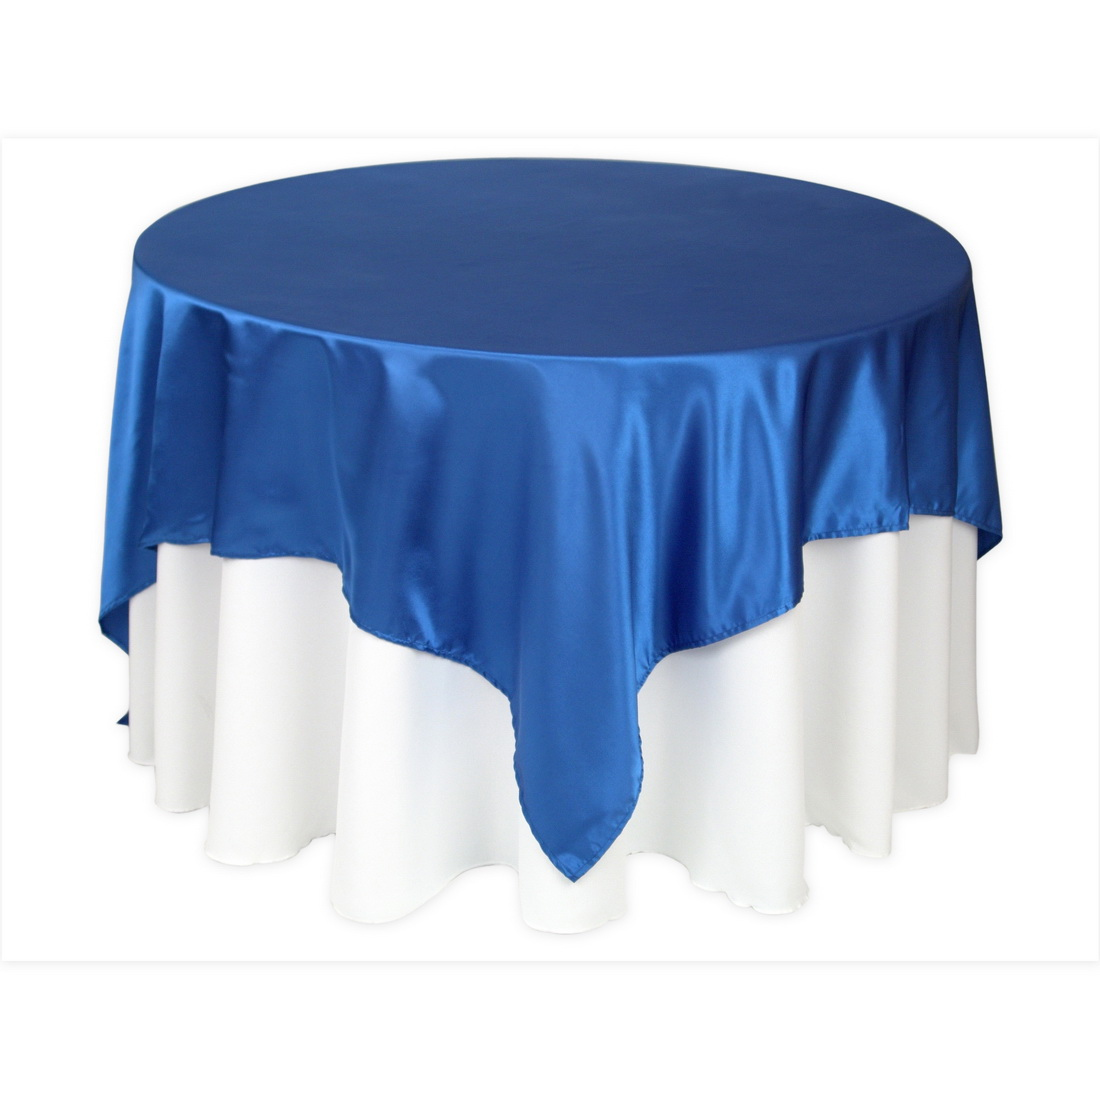 Banquet Table Cloth Satin Table Cover Table Cloth Overlay